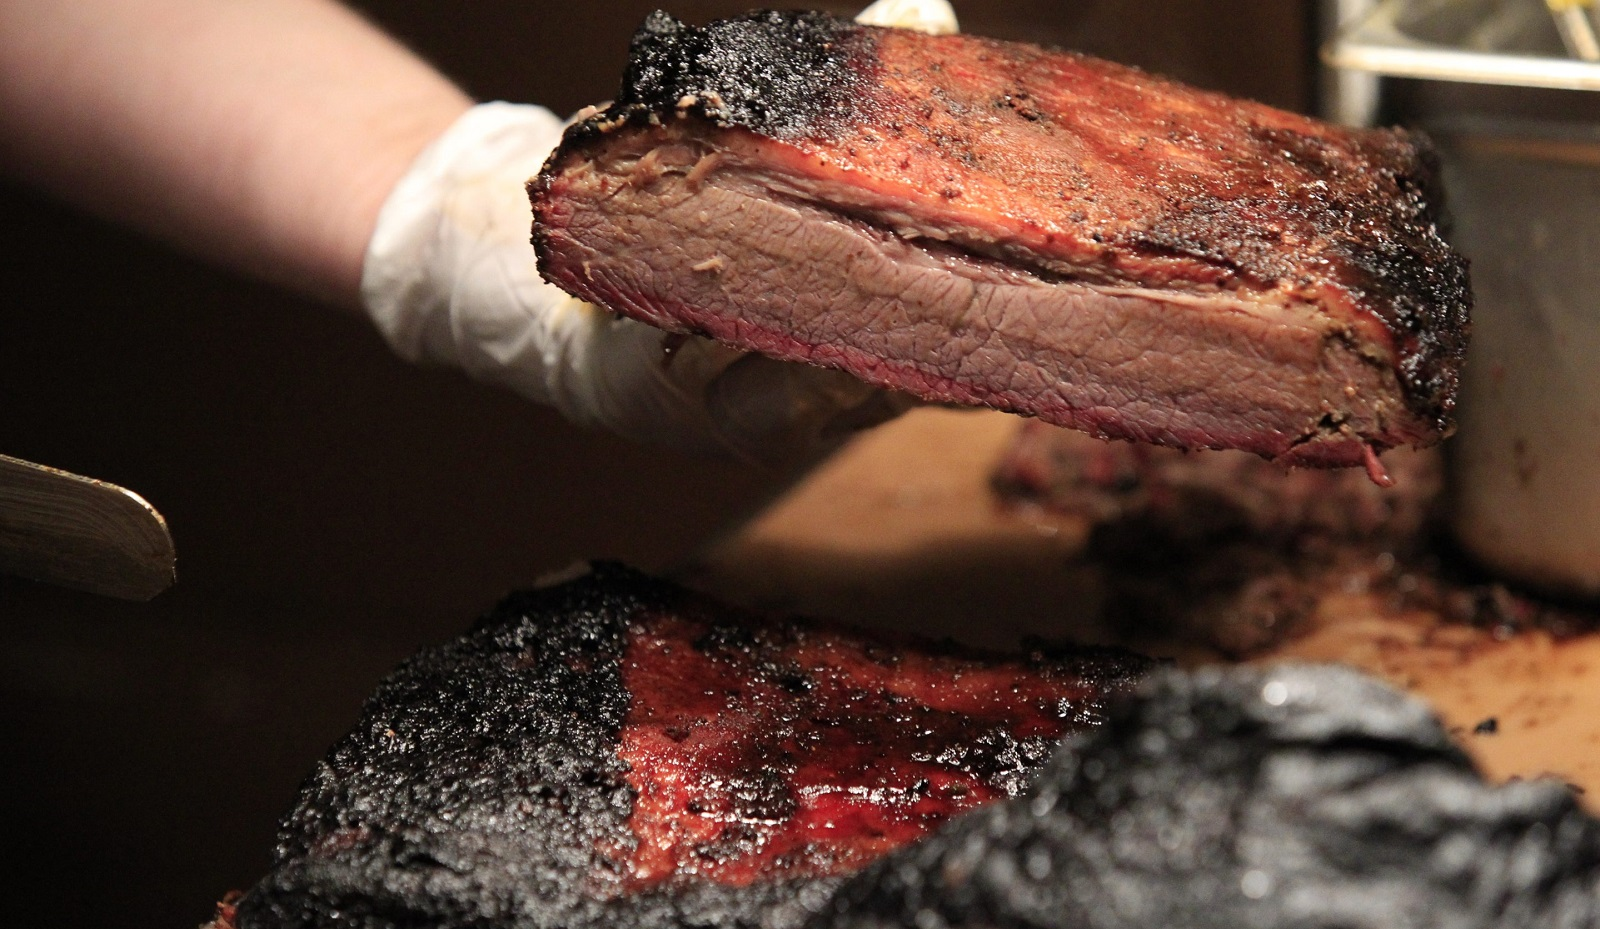 Dinosaur Bar-B-Que is now the official barbecue and barbecue sauce of the Bills. What does this mean for fans attending games? (Harry Scull Jr./Buffalo News file photo)